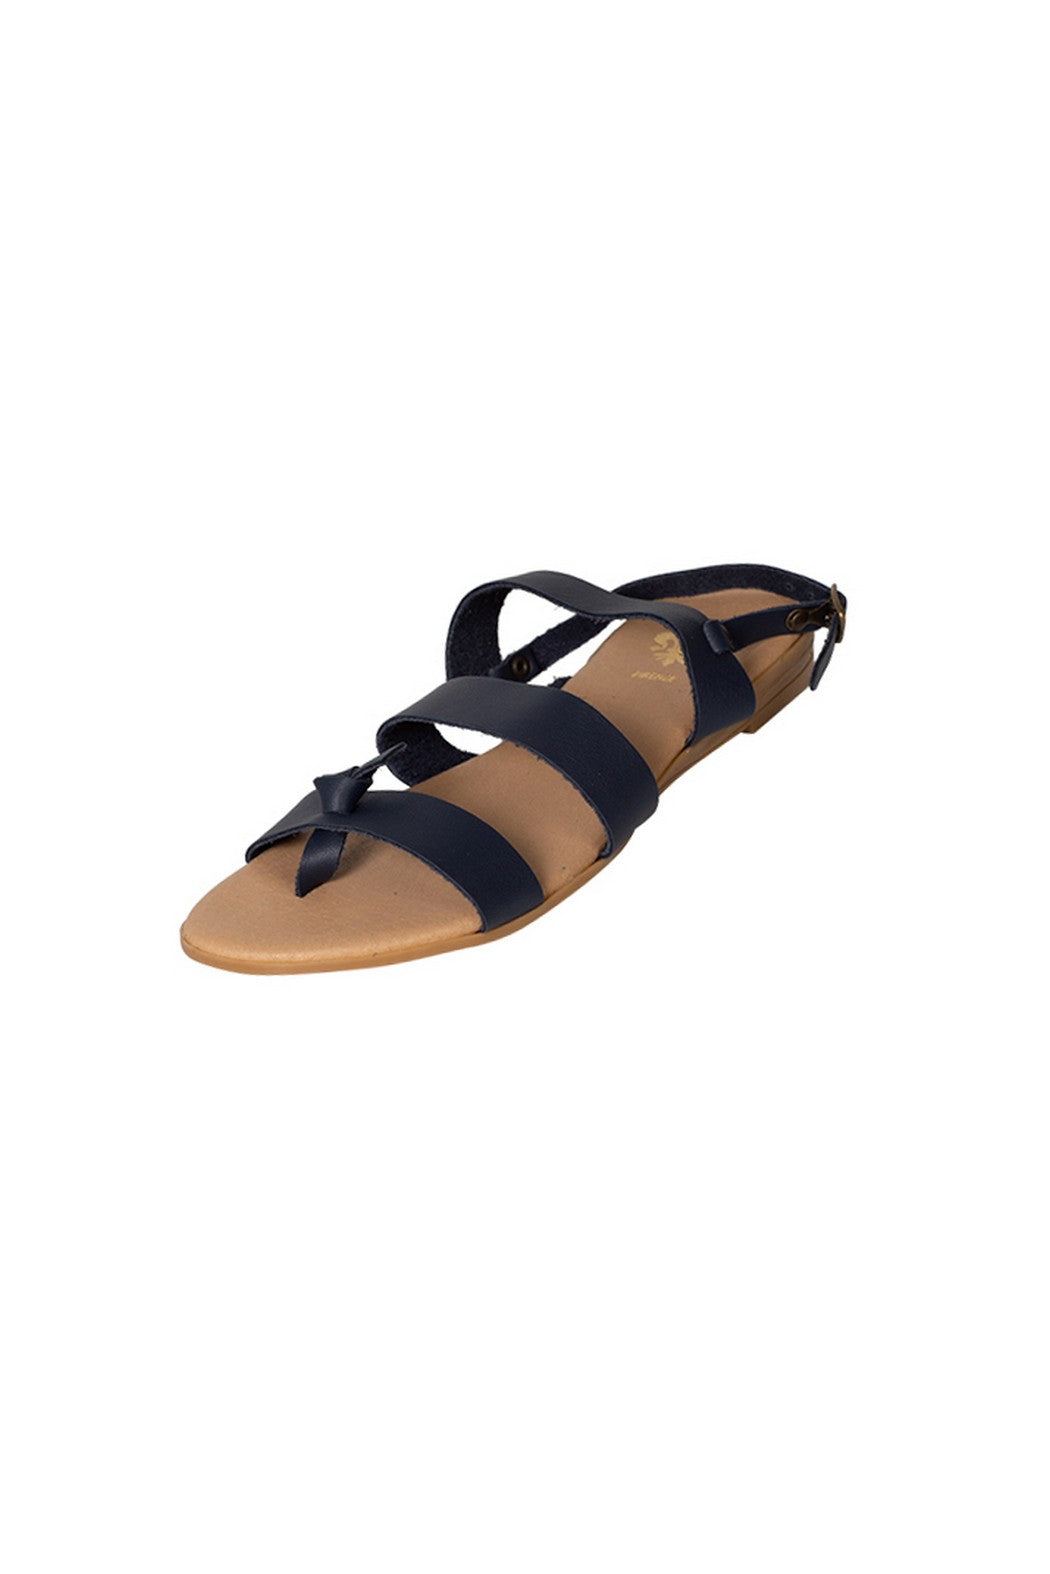 leather sandal three strap casual